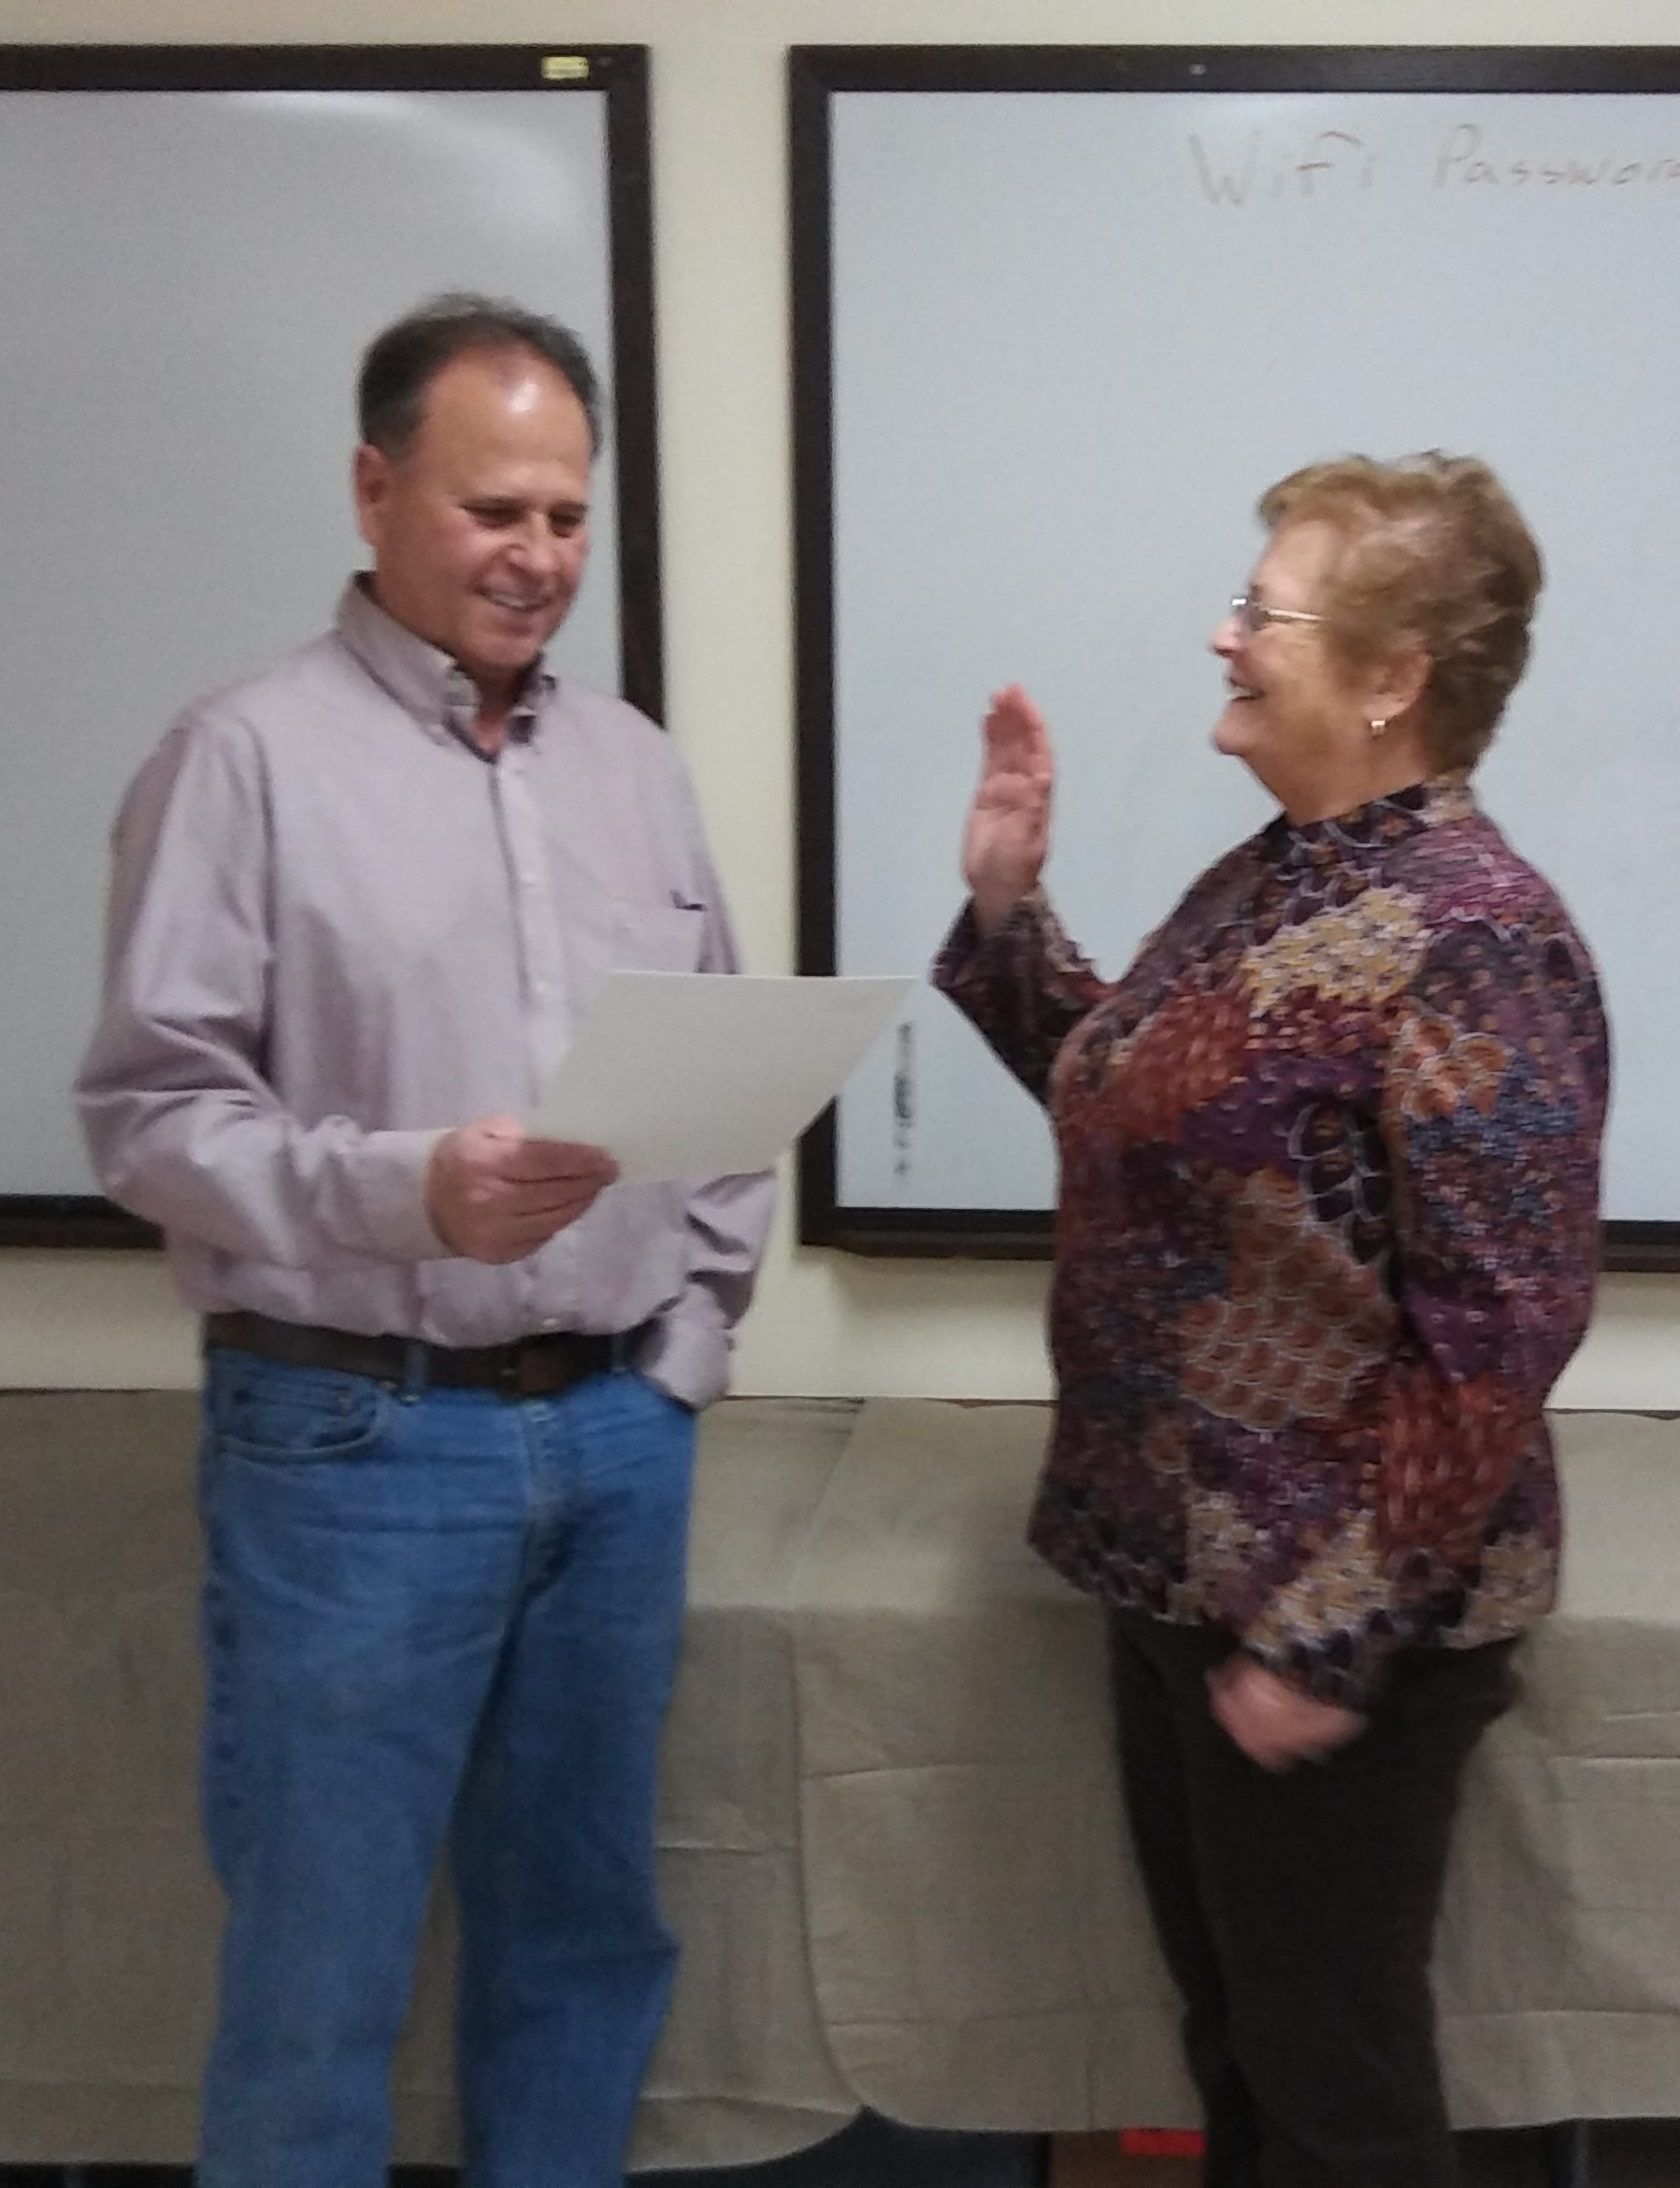 Pleasant Township trustee Sam Junk (left) recently admistered the swearing-in of Pat Baynes as Presiednt of the library and museum boards.